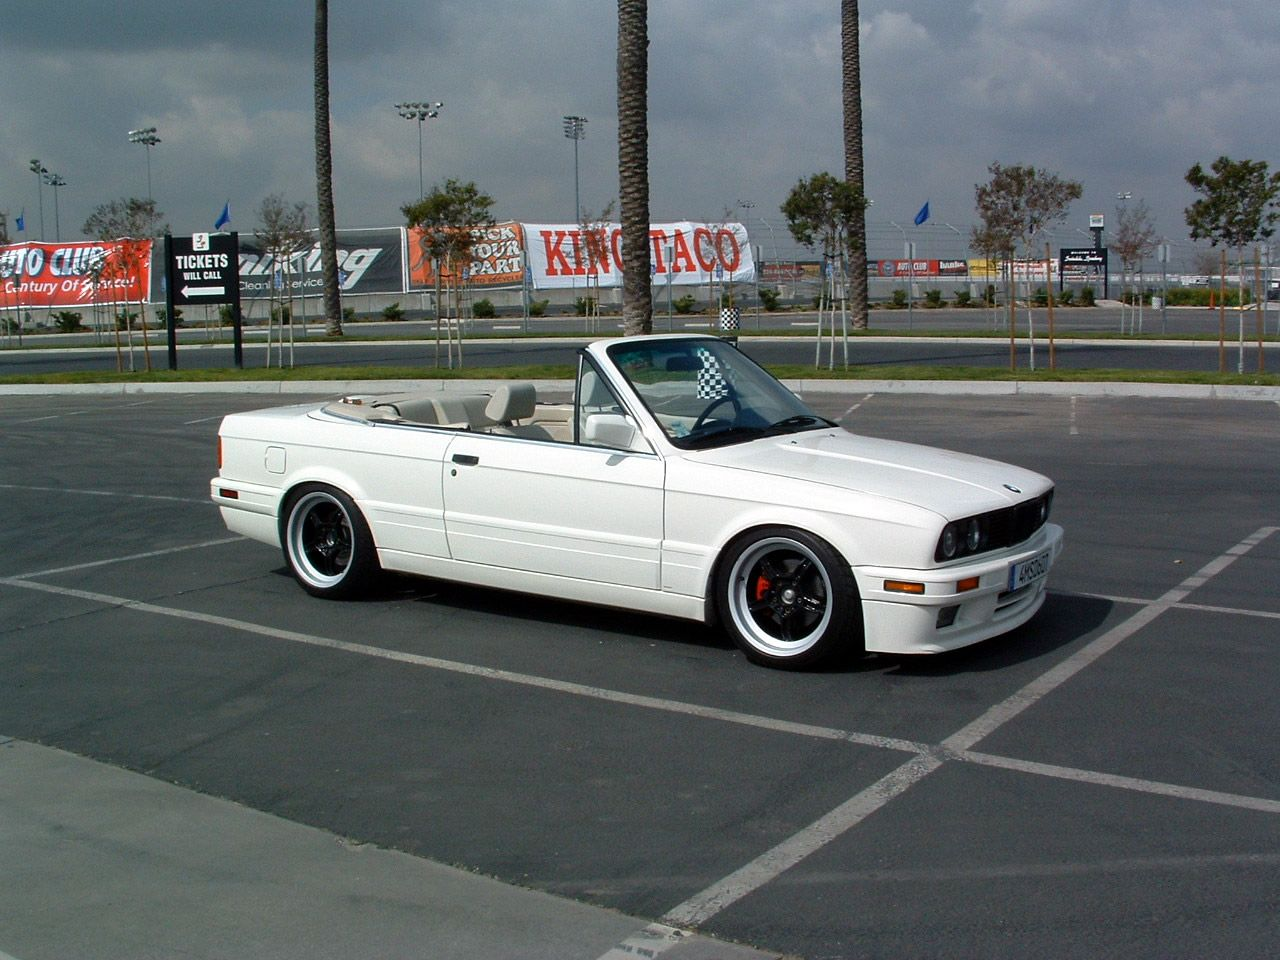 e36 sedan vs e30 convertible bimmerforums the. Black Bedroom Furniture Sets. Home Design Ideas